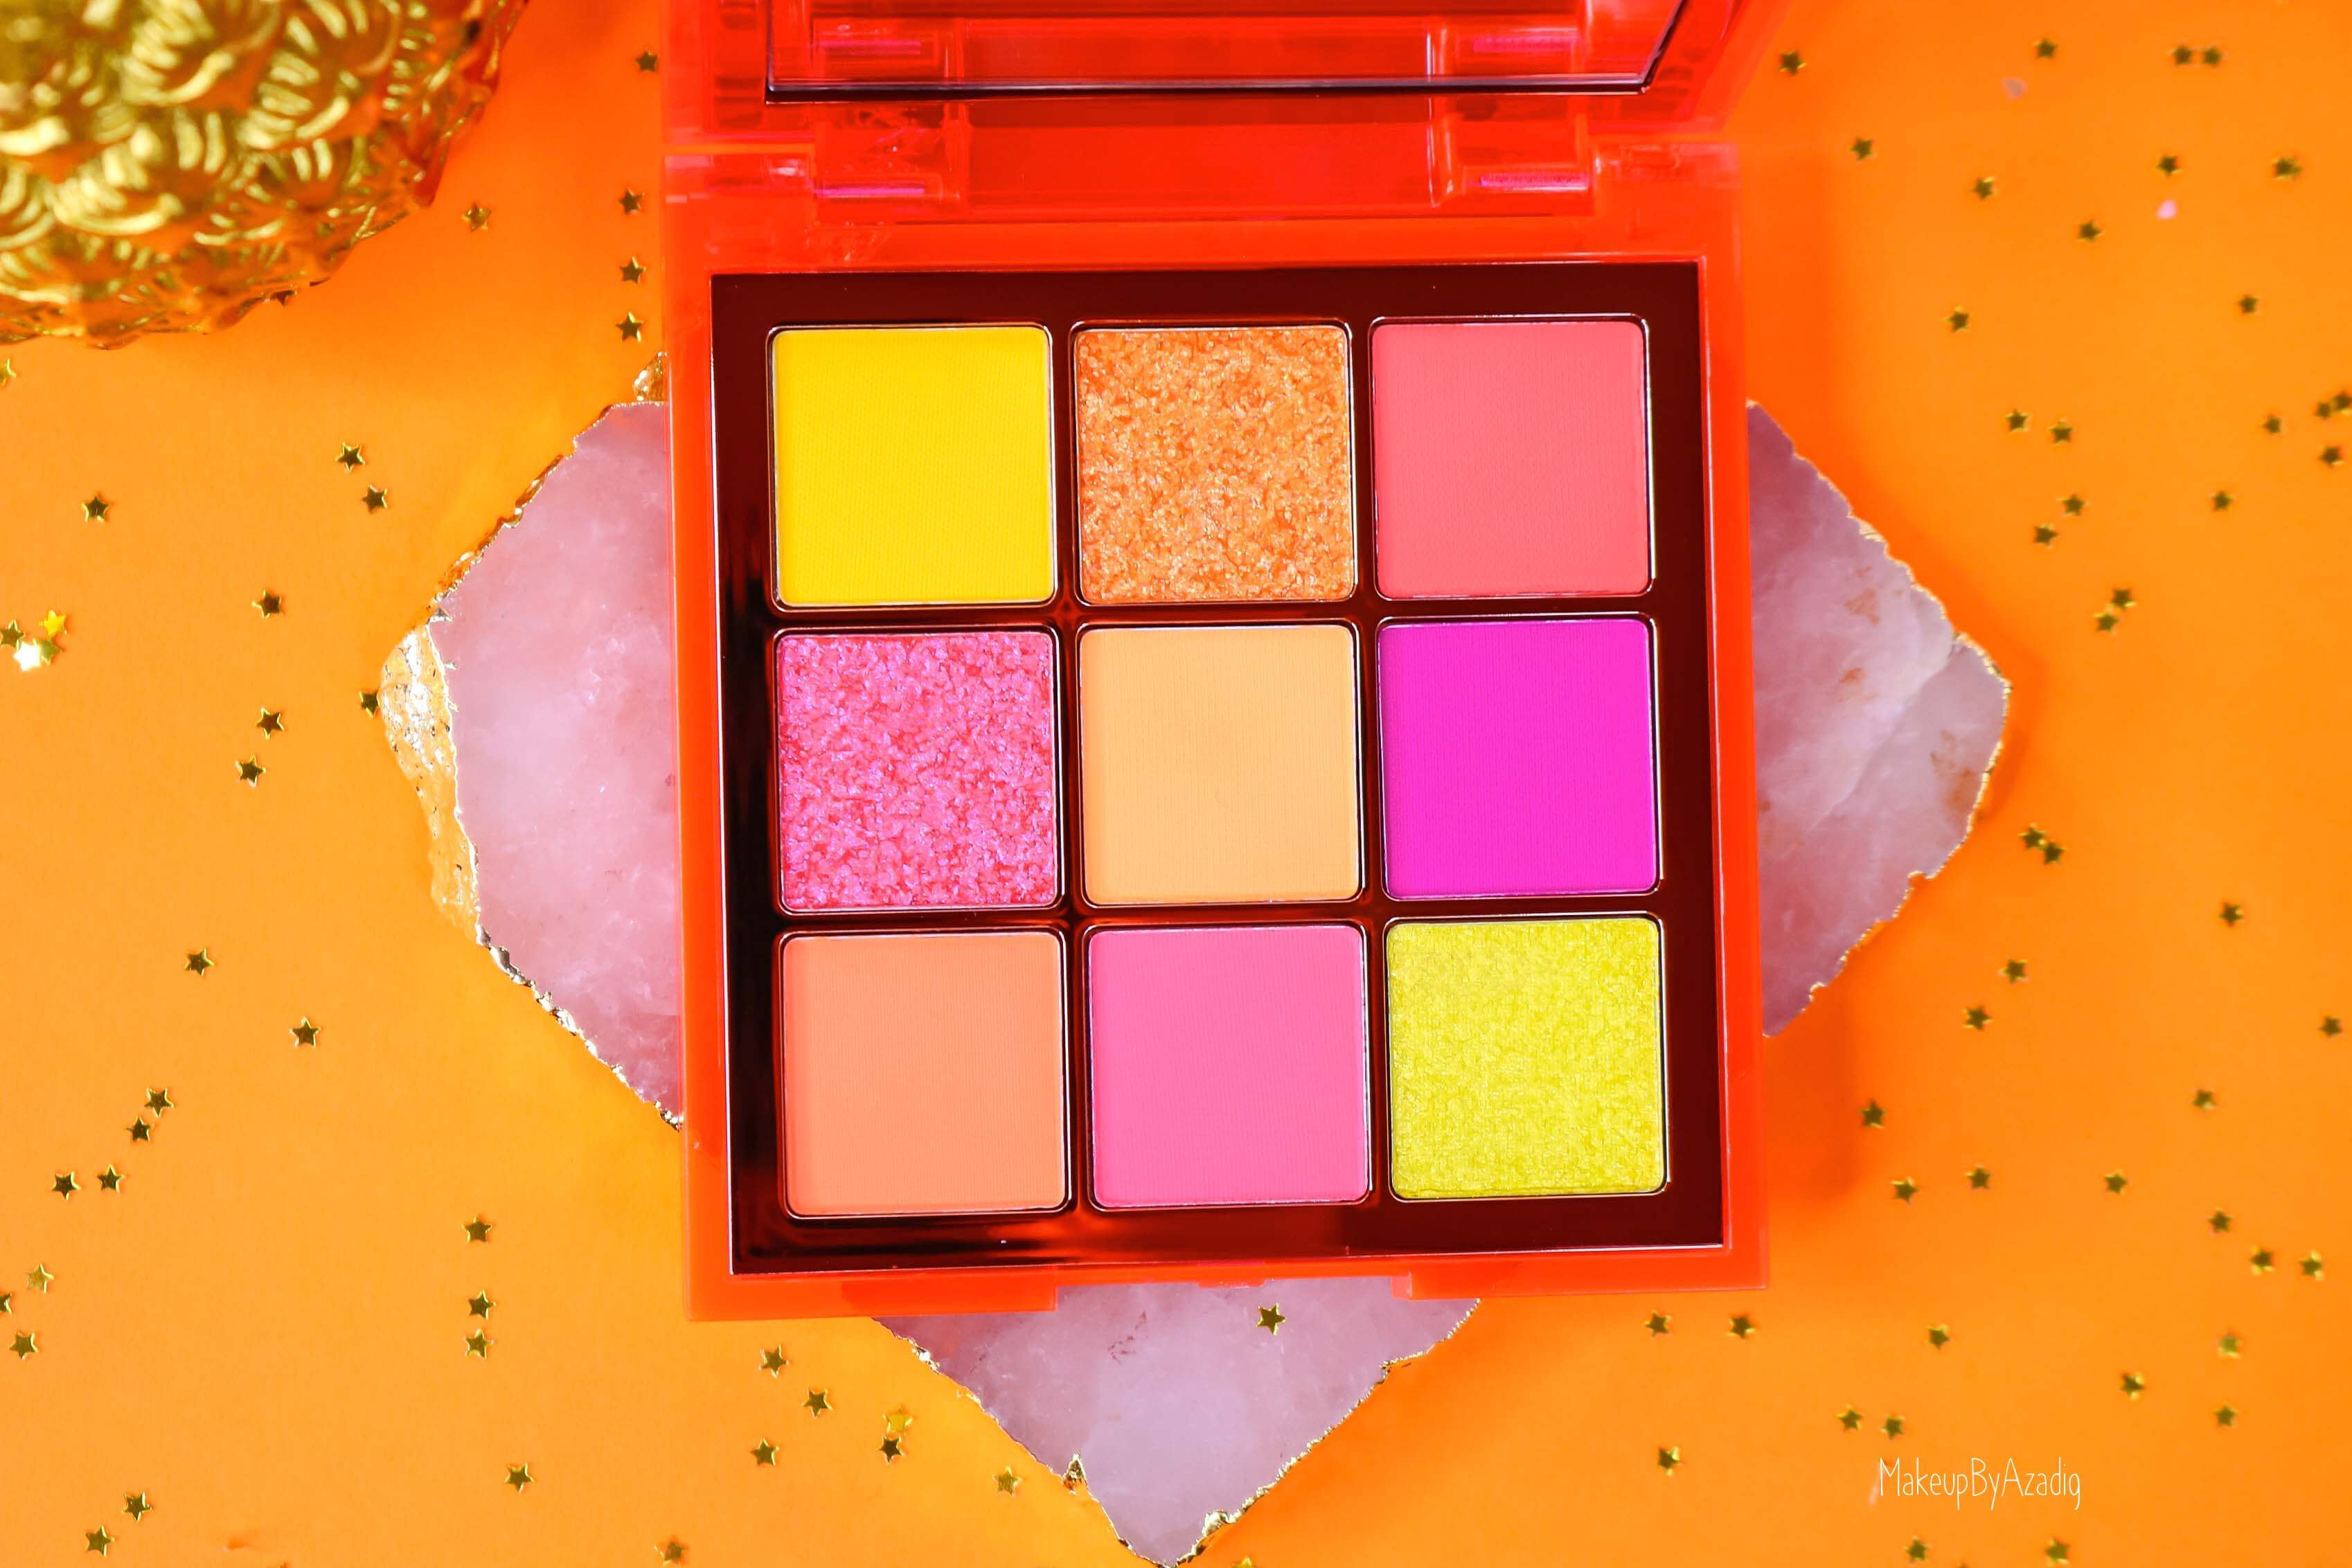 revue-review-palette-neon-obsession-huda-beauty-orange-pink-green-neon-palette-fard-paupieres-fluo-swatch-avis-prix-makeupbyazadig-couleurs